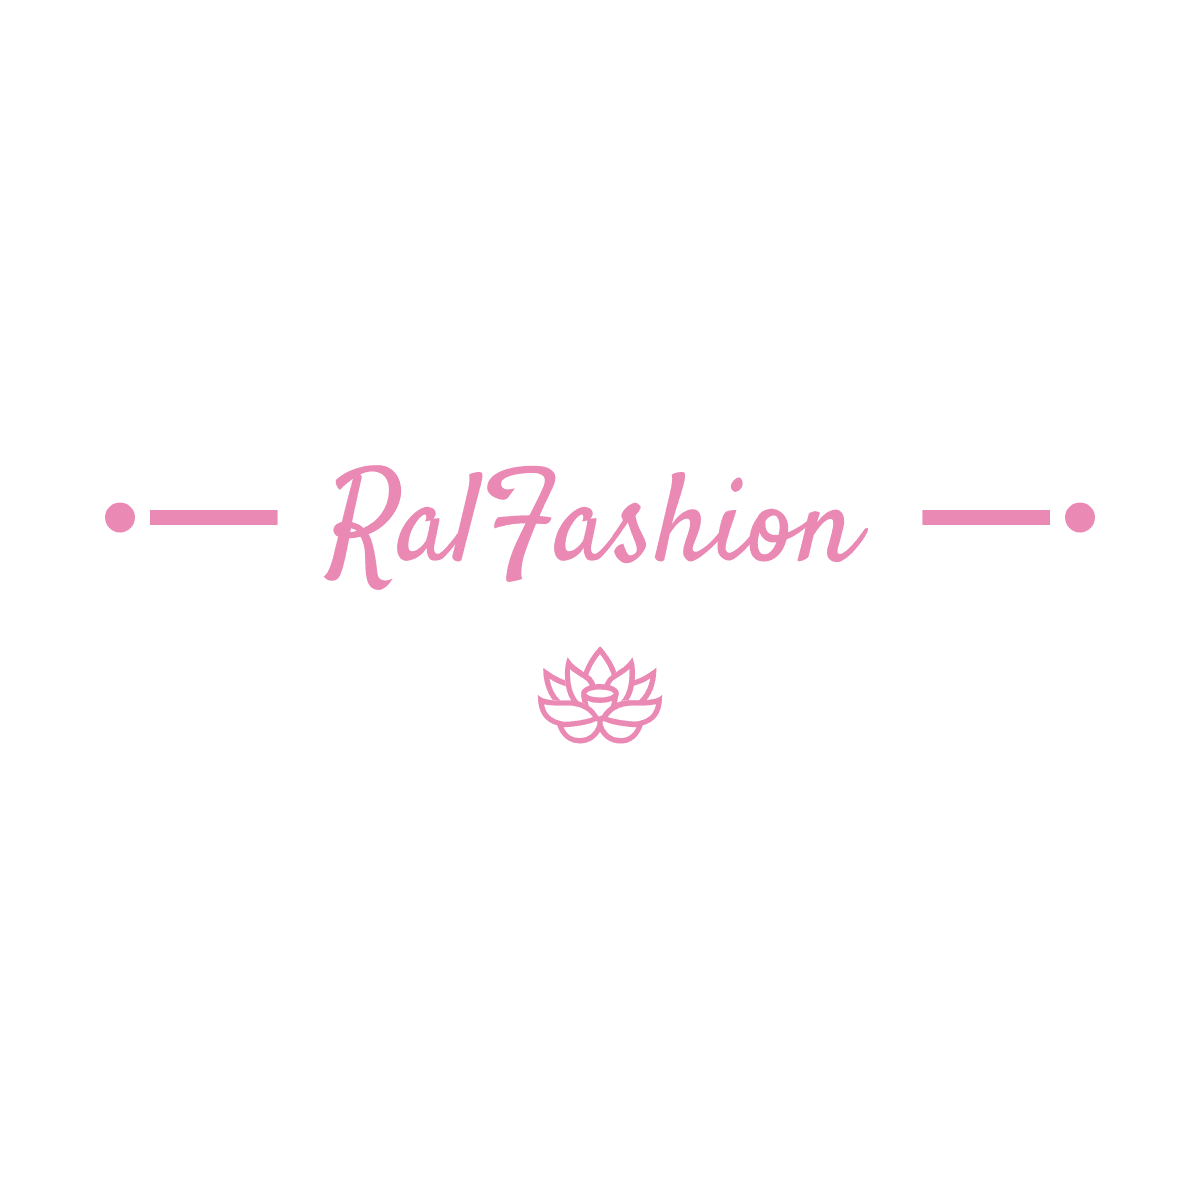 RalFashion